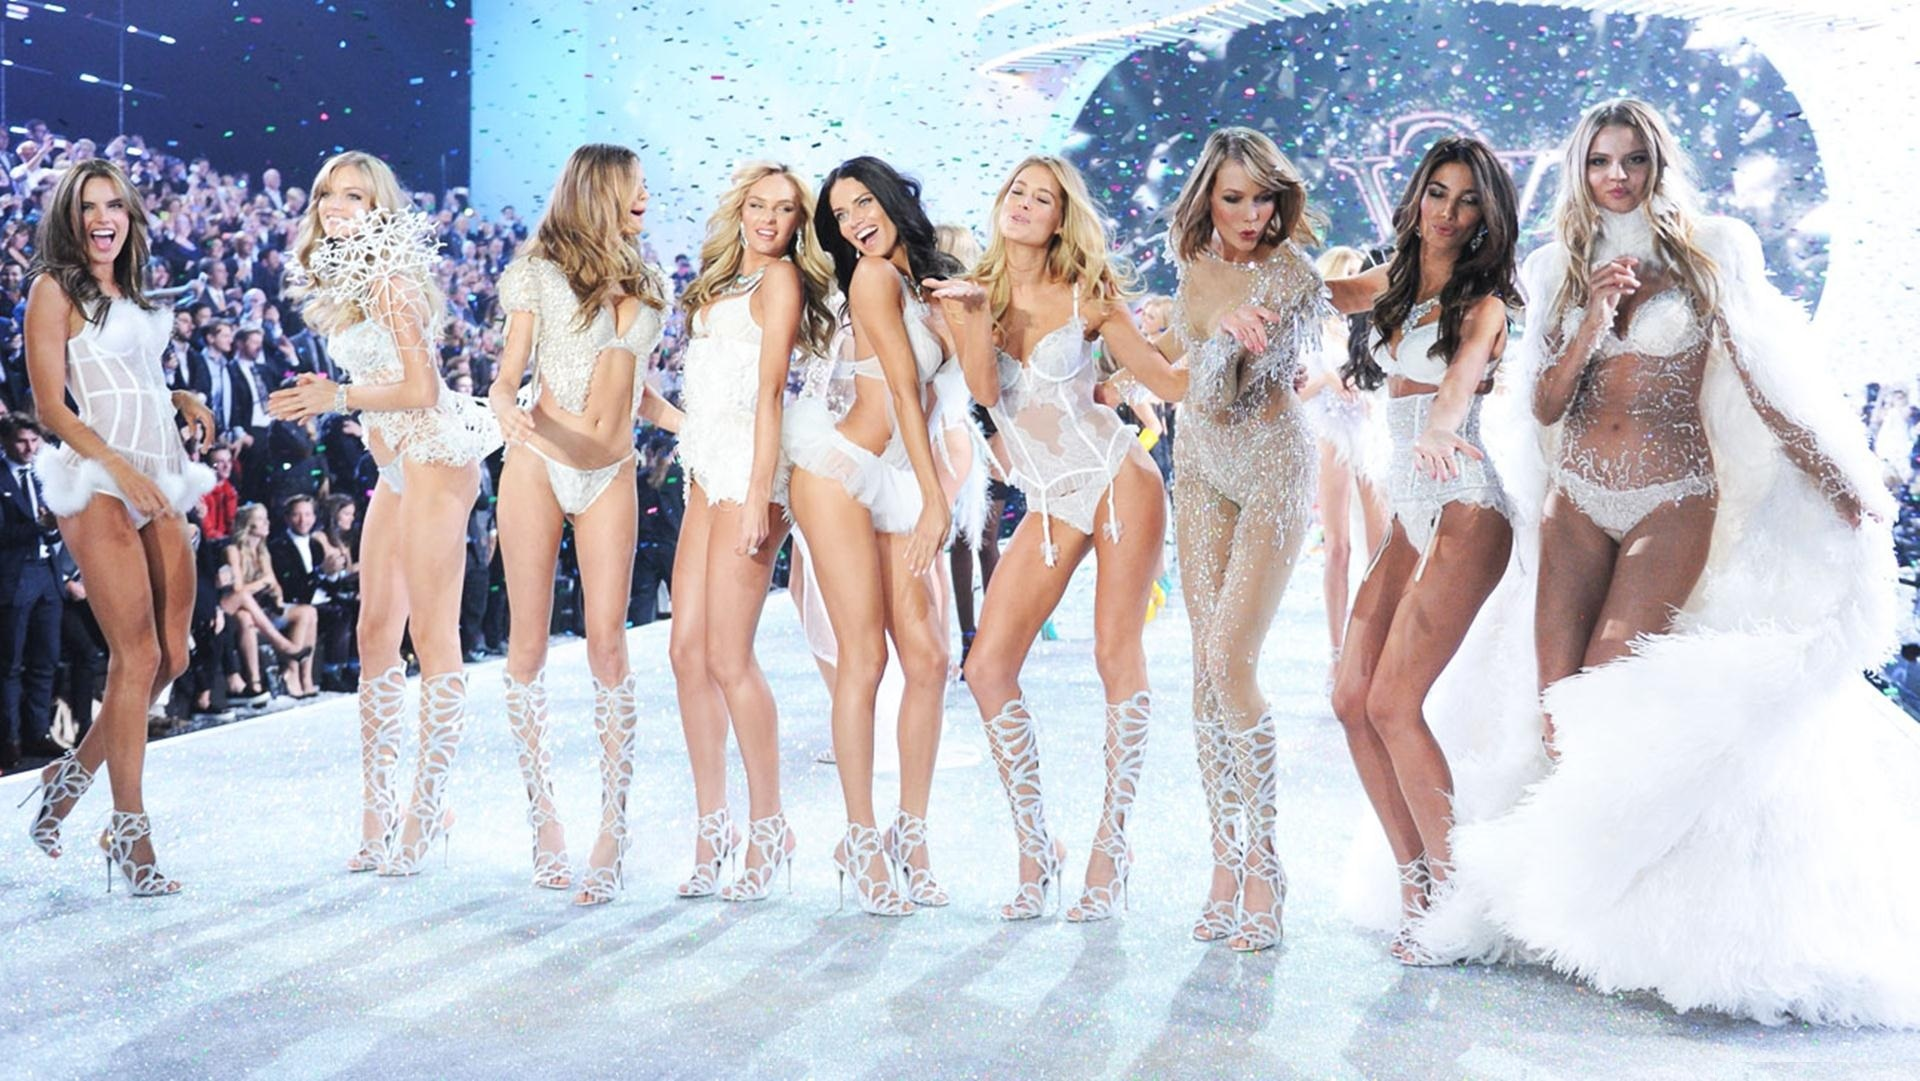 Victoria's Secret Fashion Show 2014 Photos